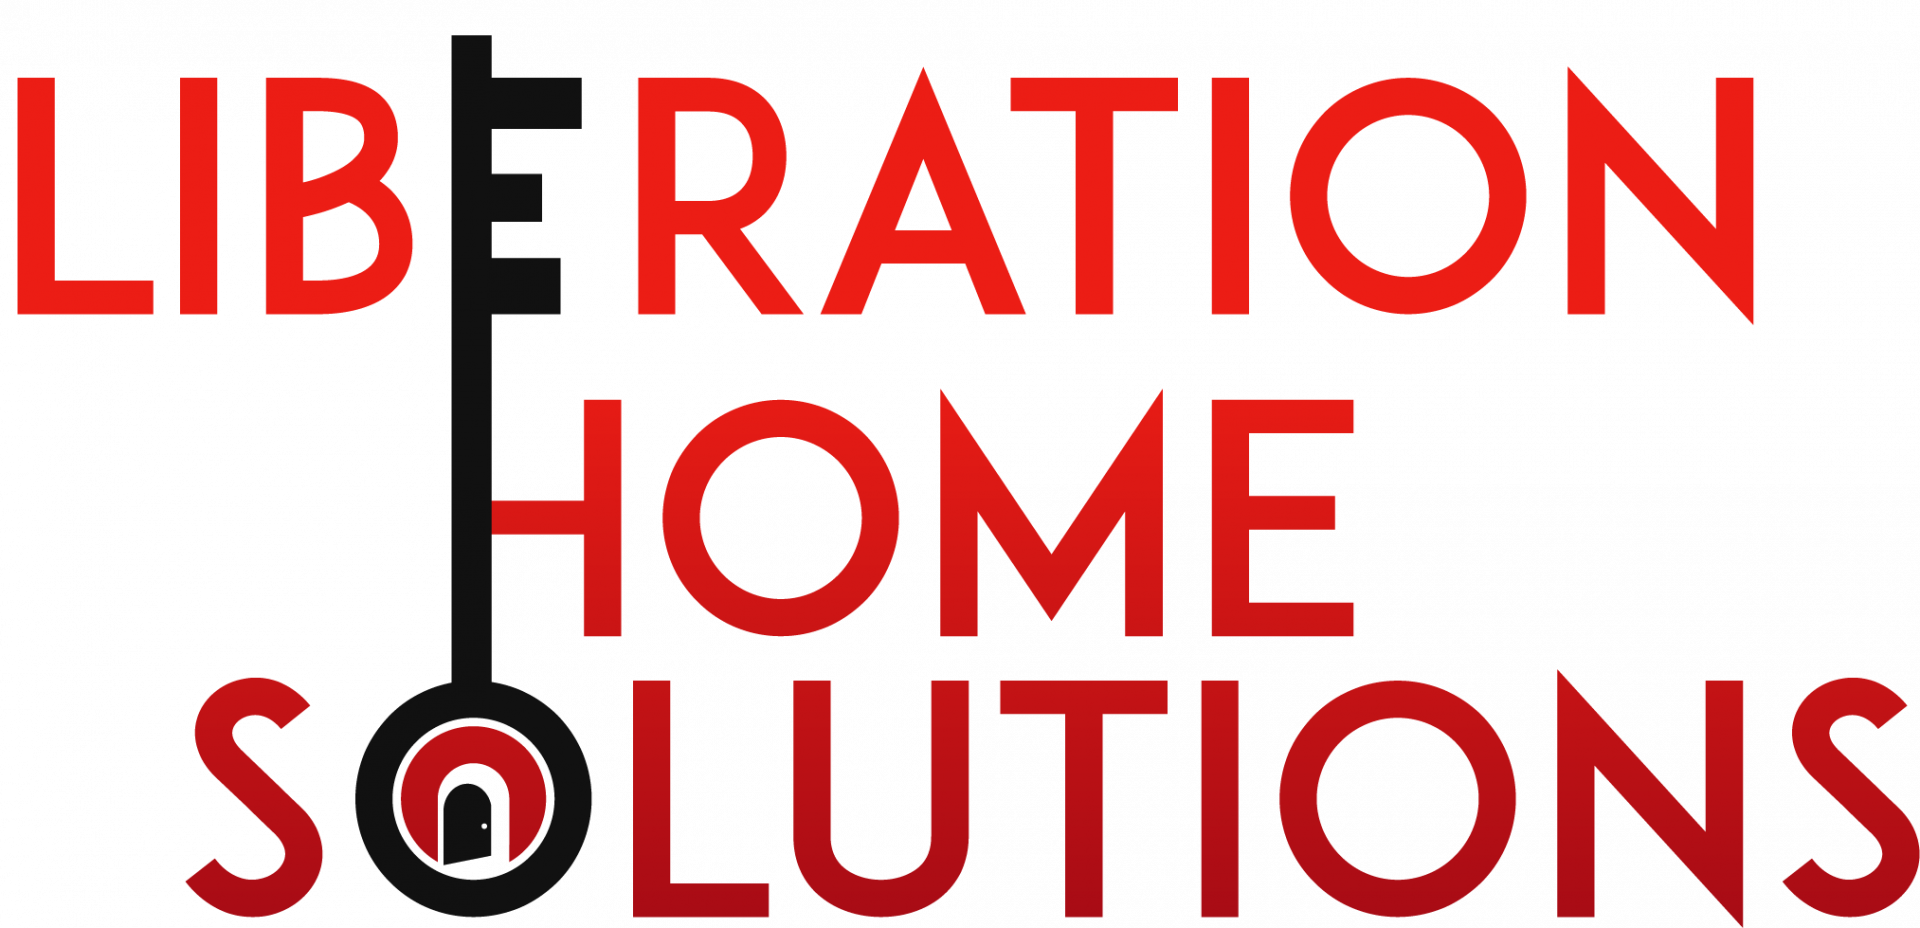 Liberation Home Solutions  logo